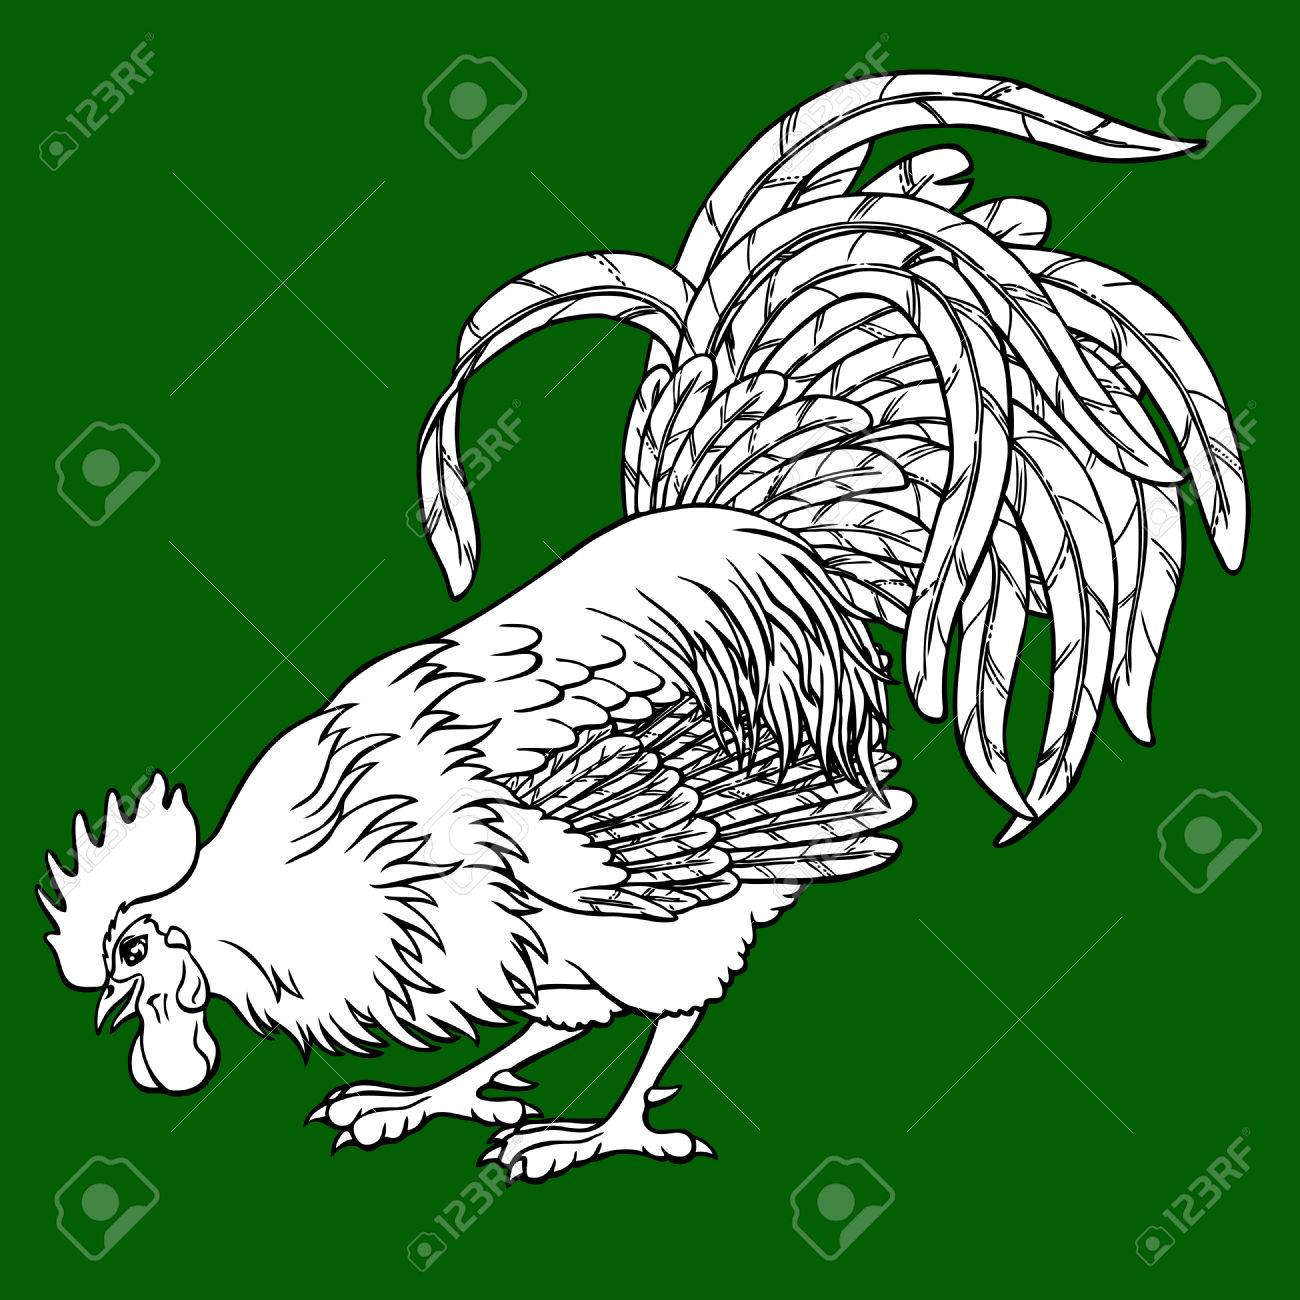 Calling Rooster Coloring On Green Background. Decorative Chicken ...